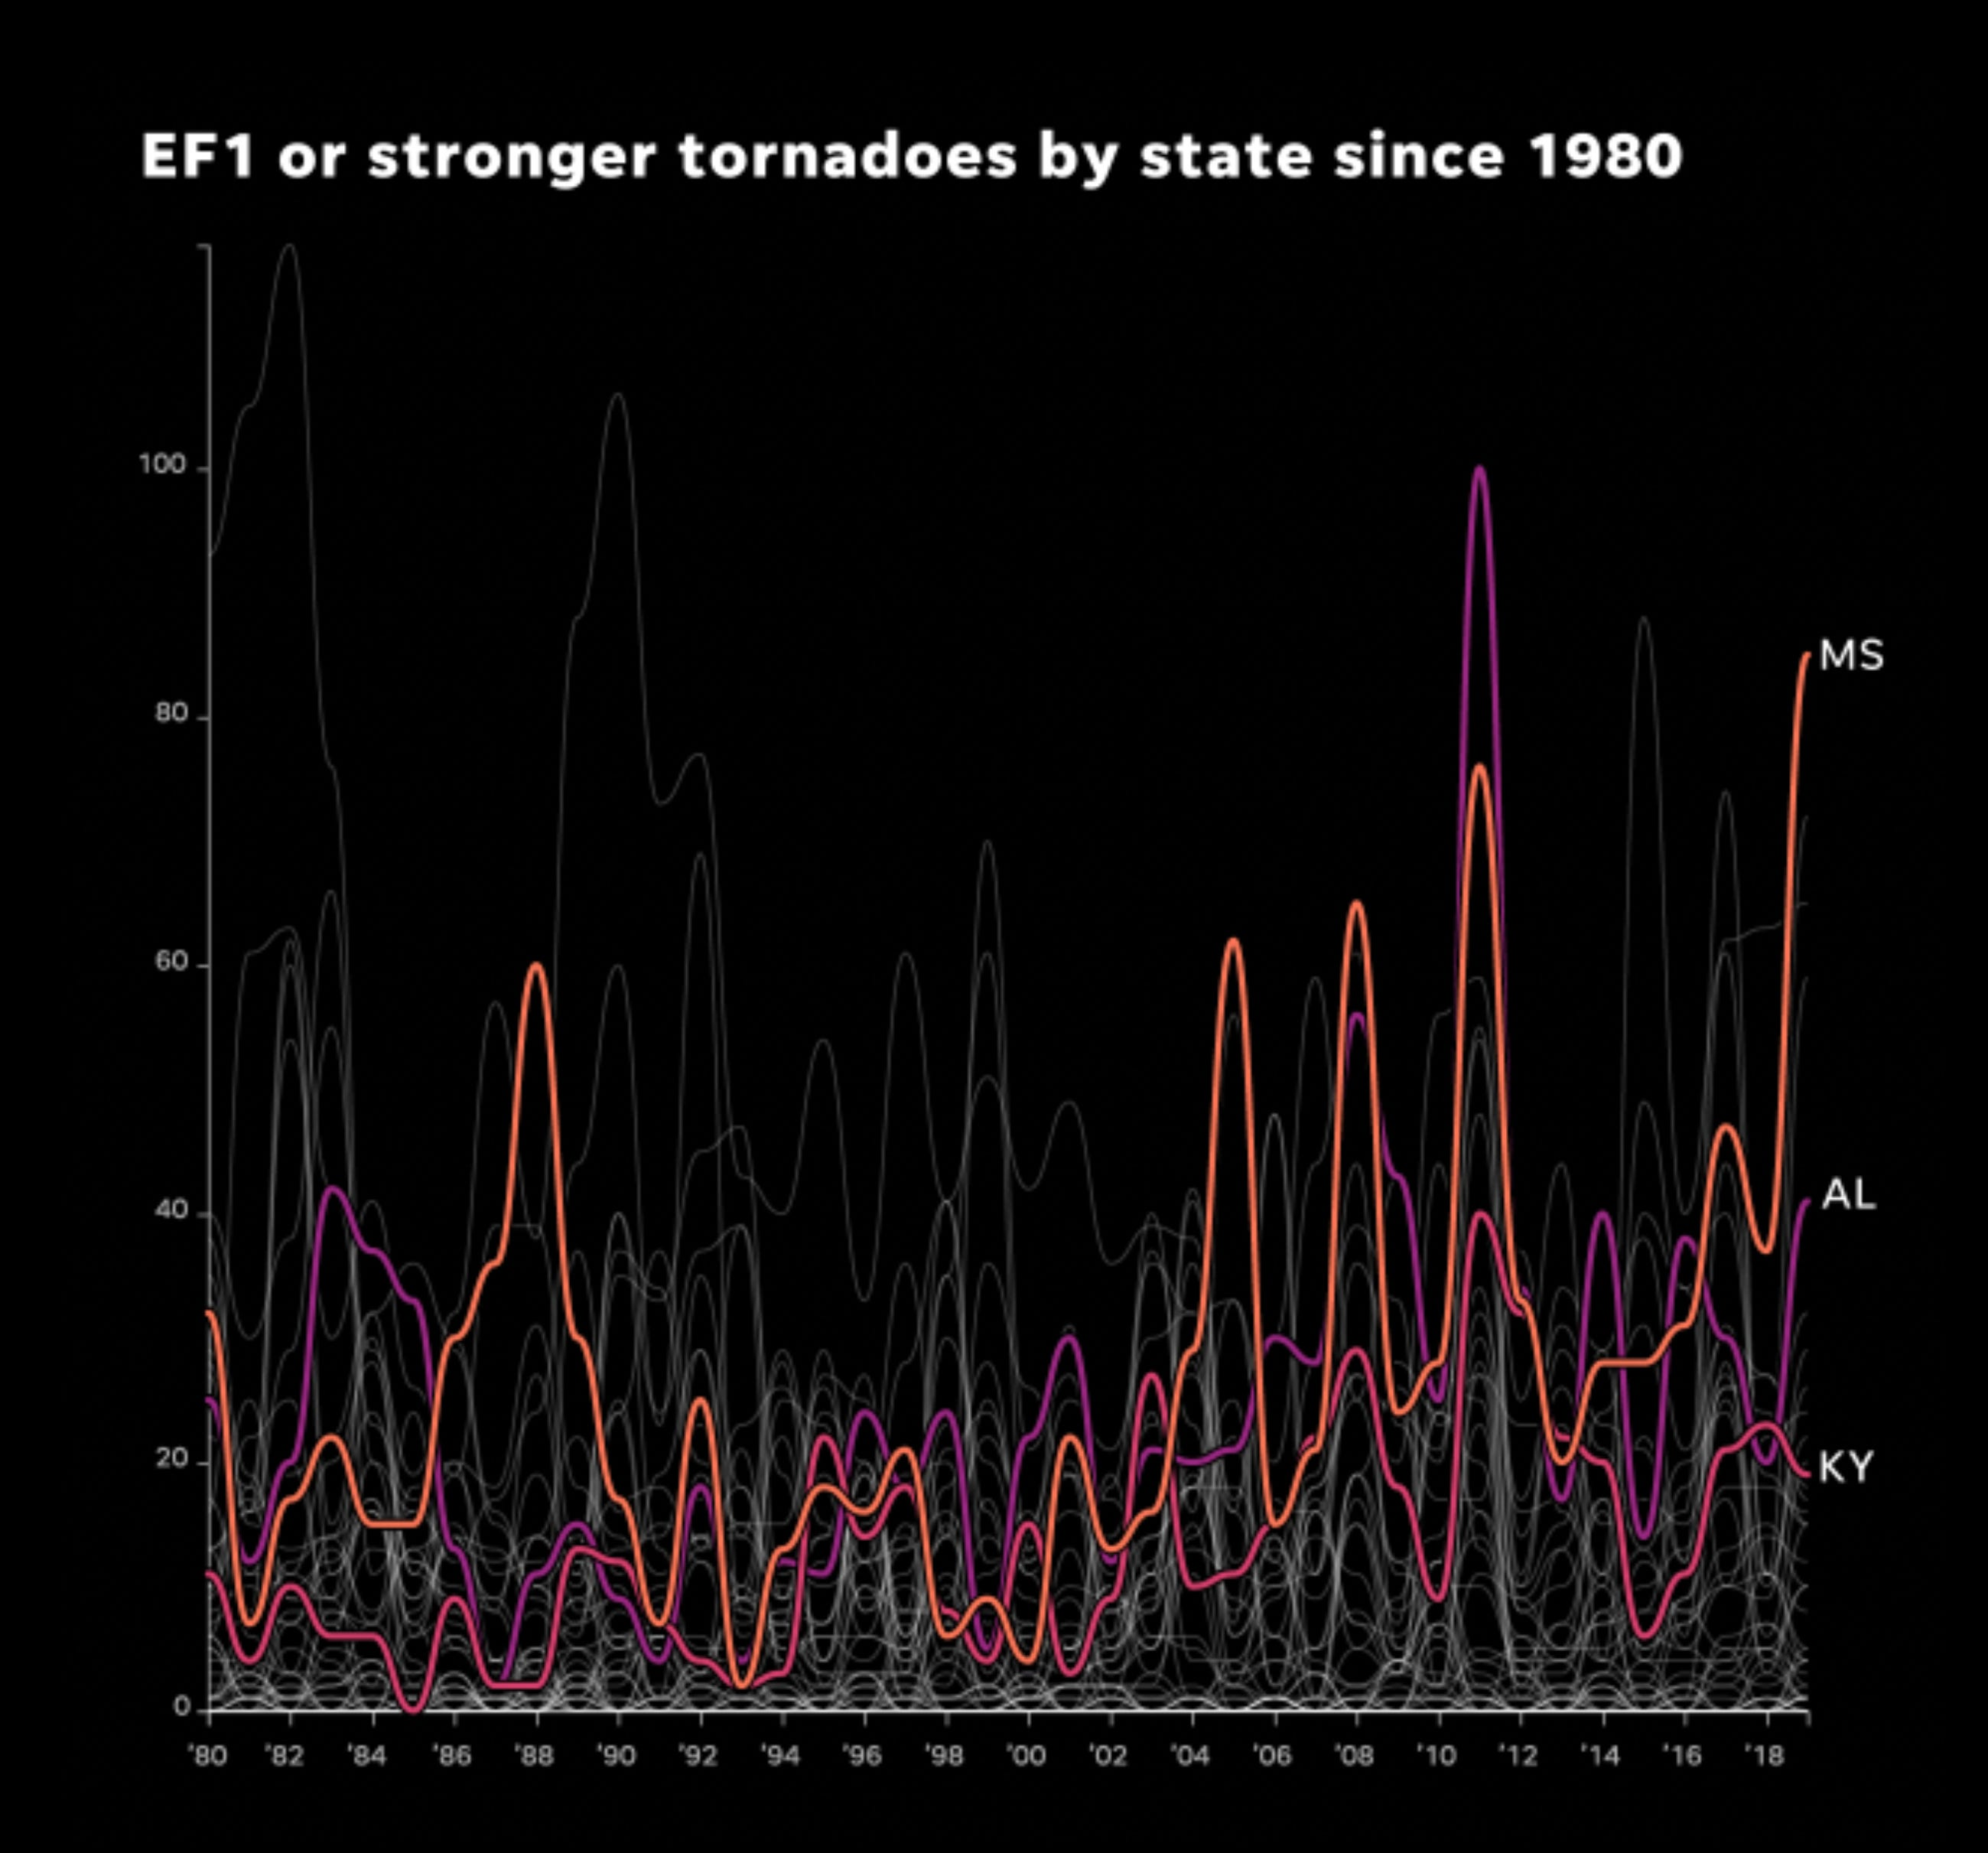 EF1+ tornadoes by state 1980-2019.